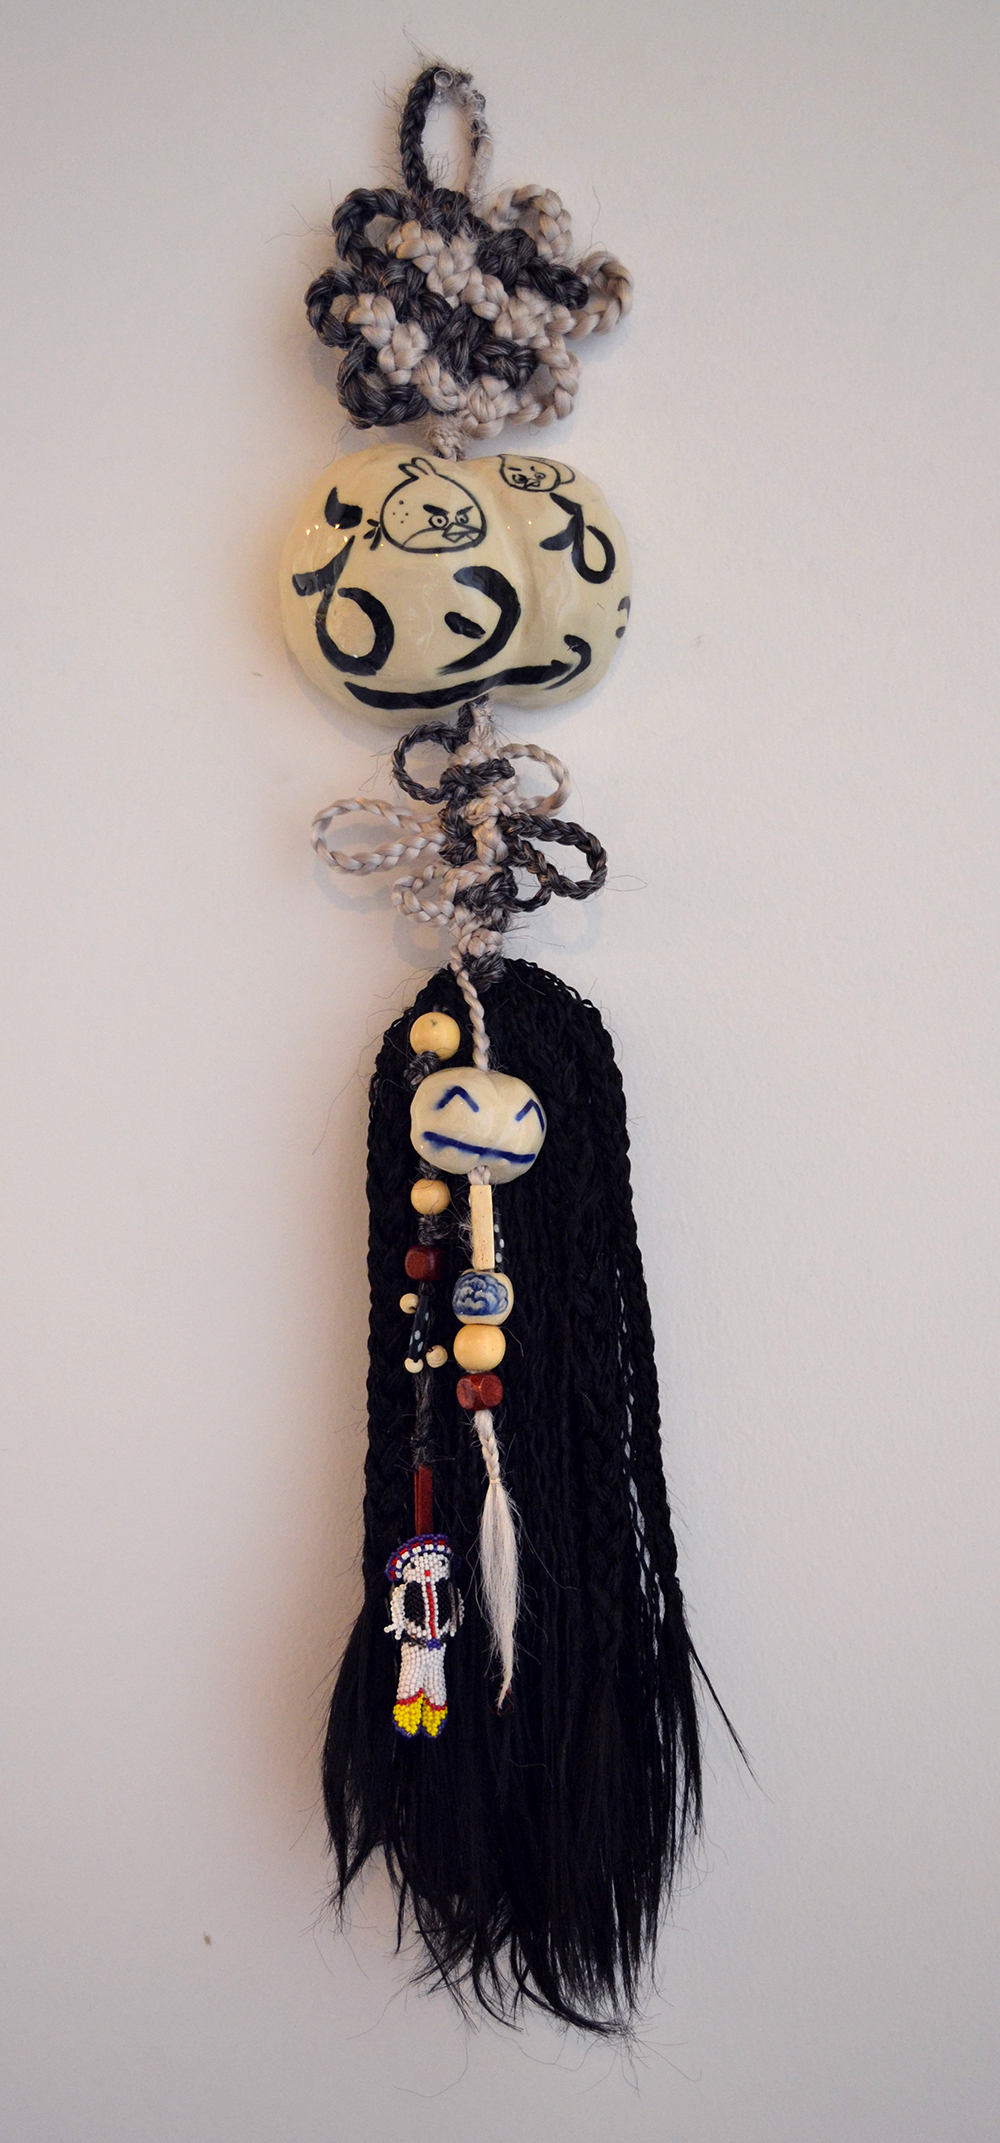 "Jiha Moon  Harley Crow  Ceramic, hand-knotted synthetic hair, wooden beads, found objects 28"" x 5"" x 2.25"" 2013"